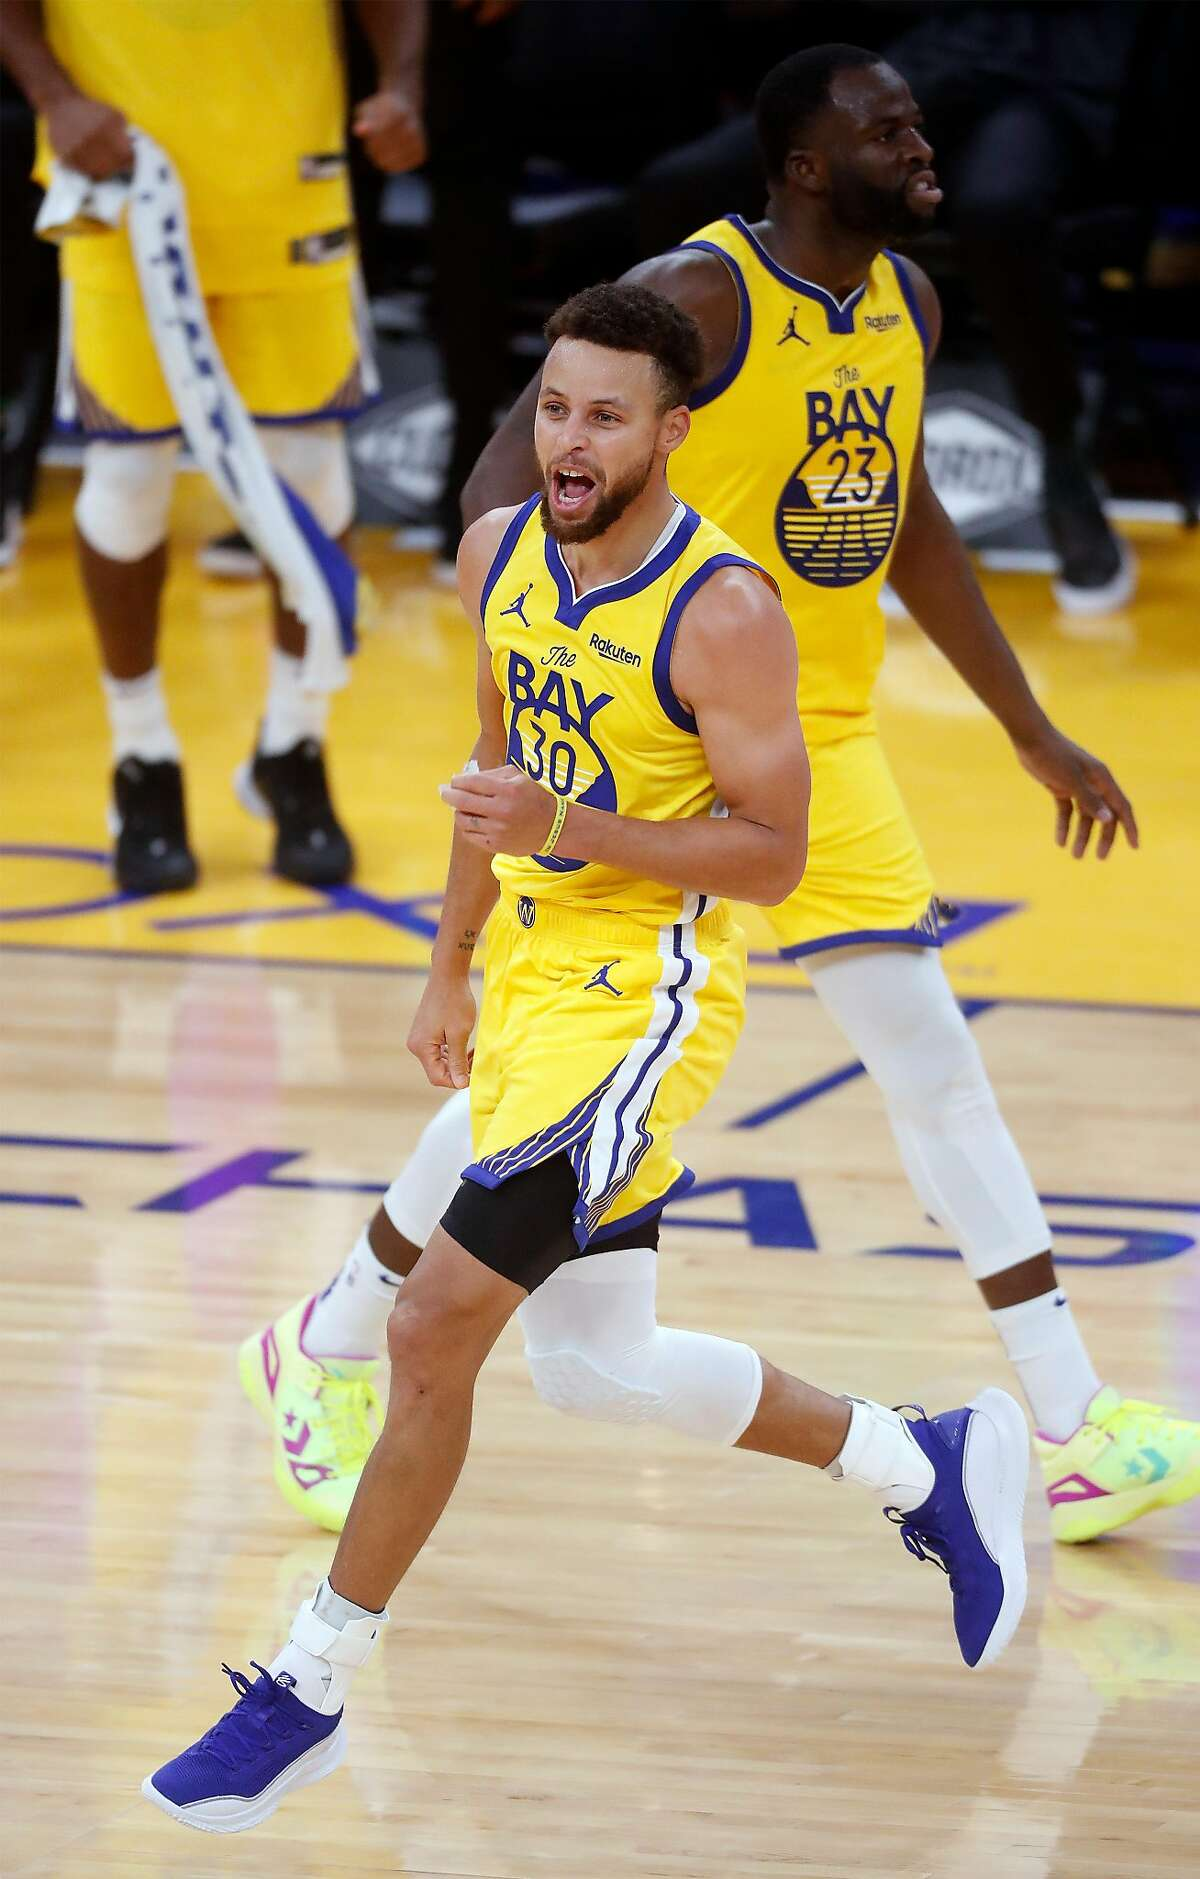 Golden State Warriors' Stephen Curry celebrates his 3-pointer giving him a career high 62 points in 4th quarter of Warriors' 137-122 win over Portland Trail Blazers in NBA game at Chase Center in San Francisco, Calif., on Sunday, January 3, 2021.